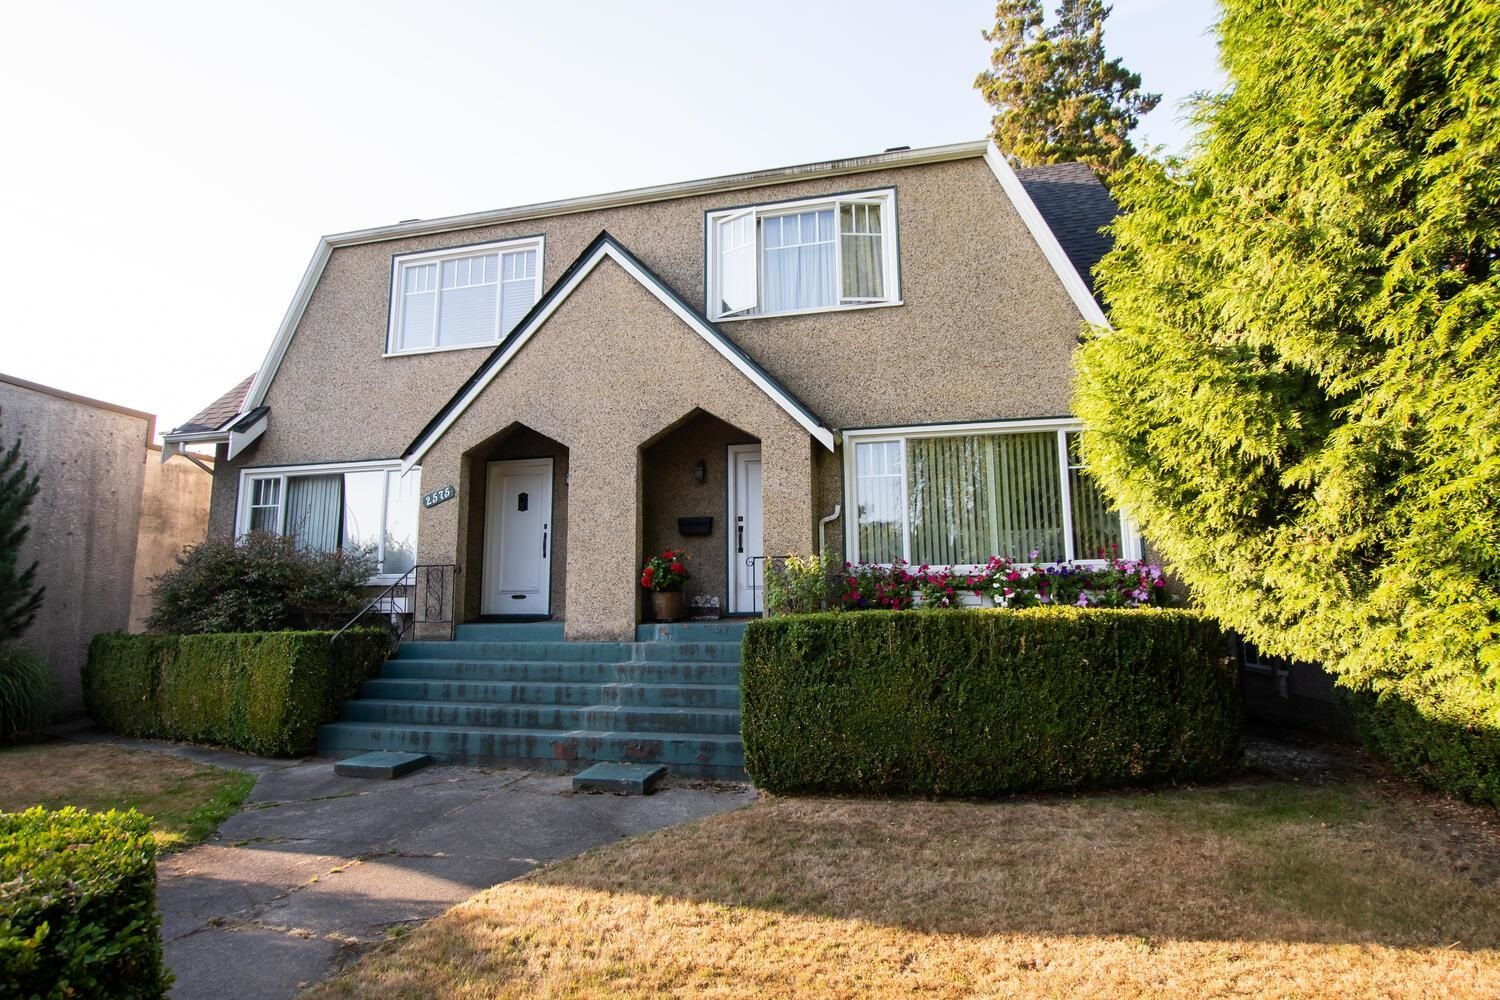 Main Photo: 2571 W 16TH Avenue in Vancouver: Kitsilano Land Commercial for sale (Vancouver West)  : MLS®# C8039949